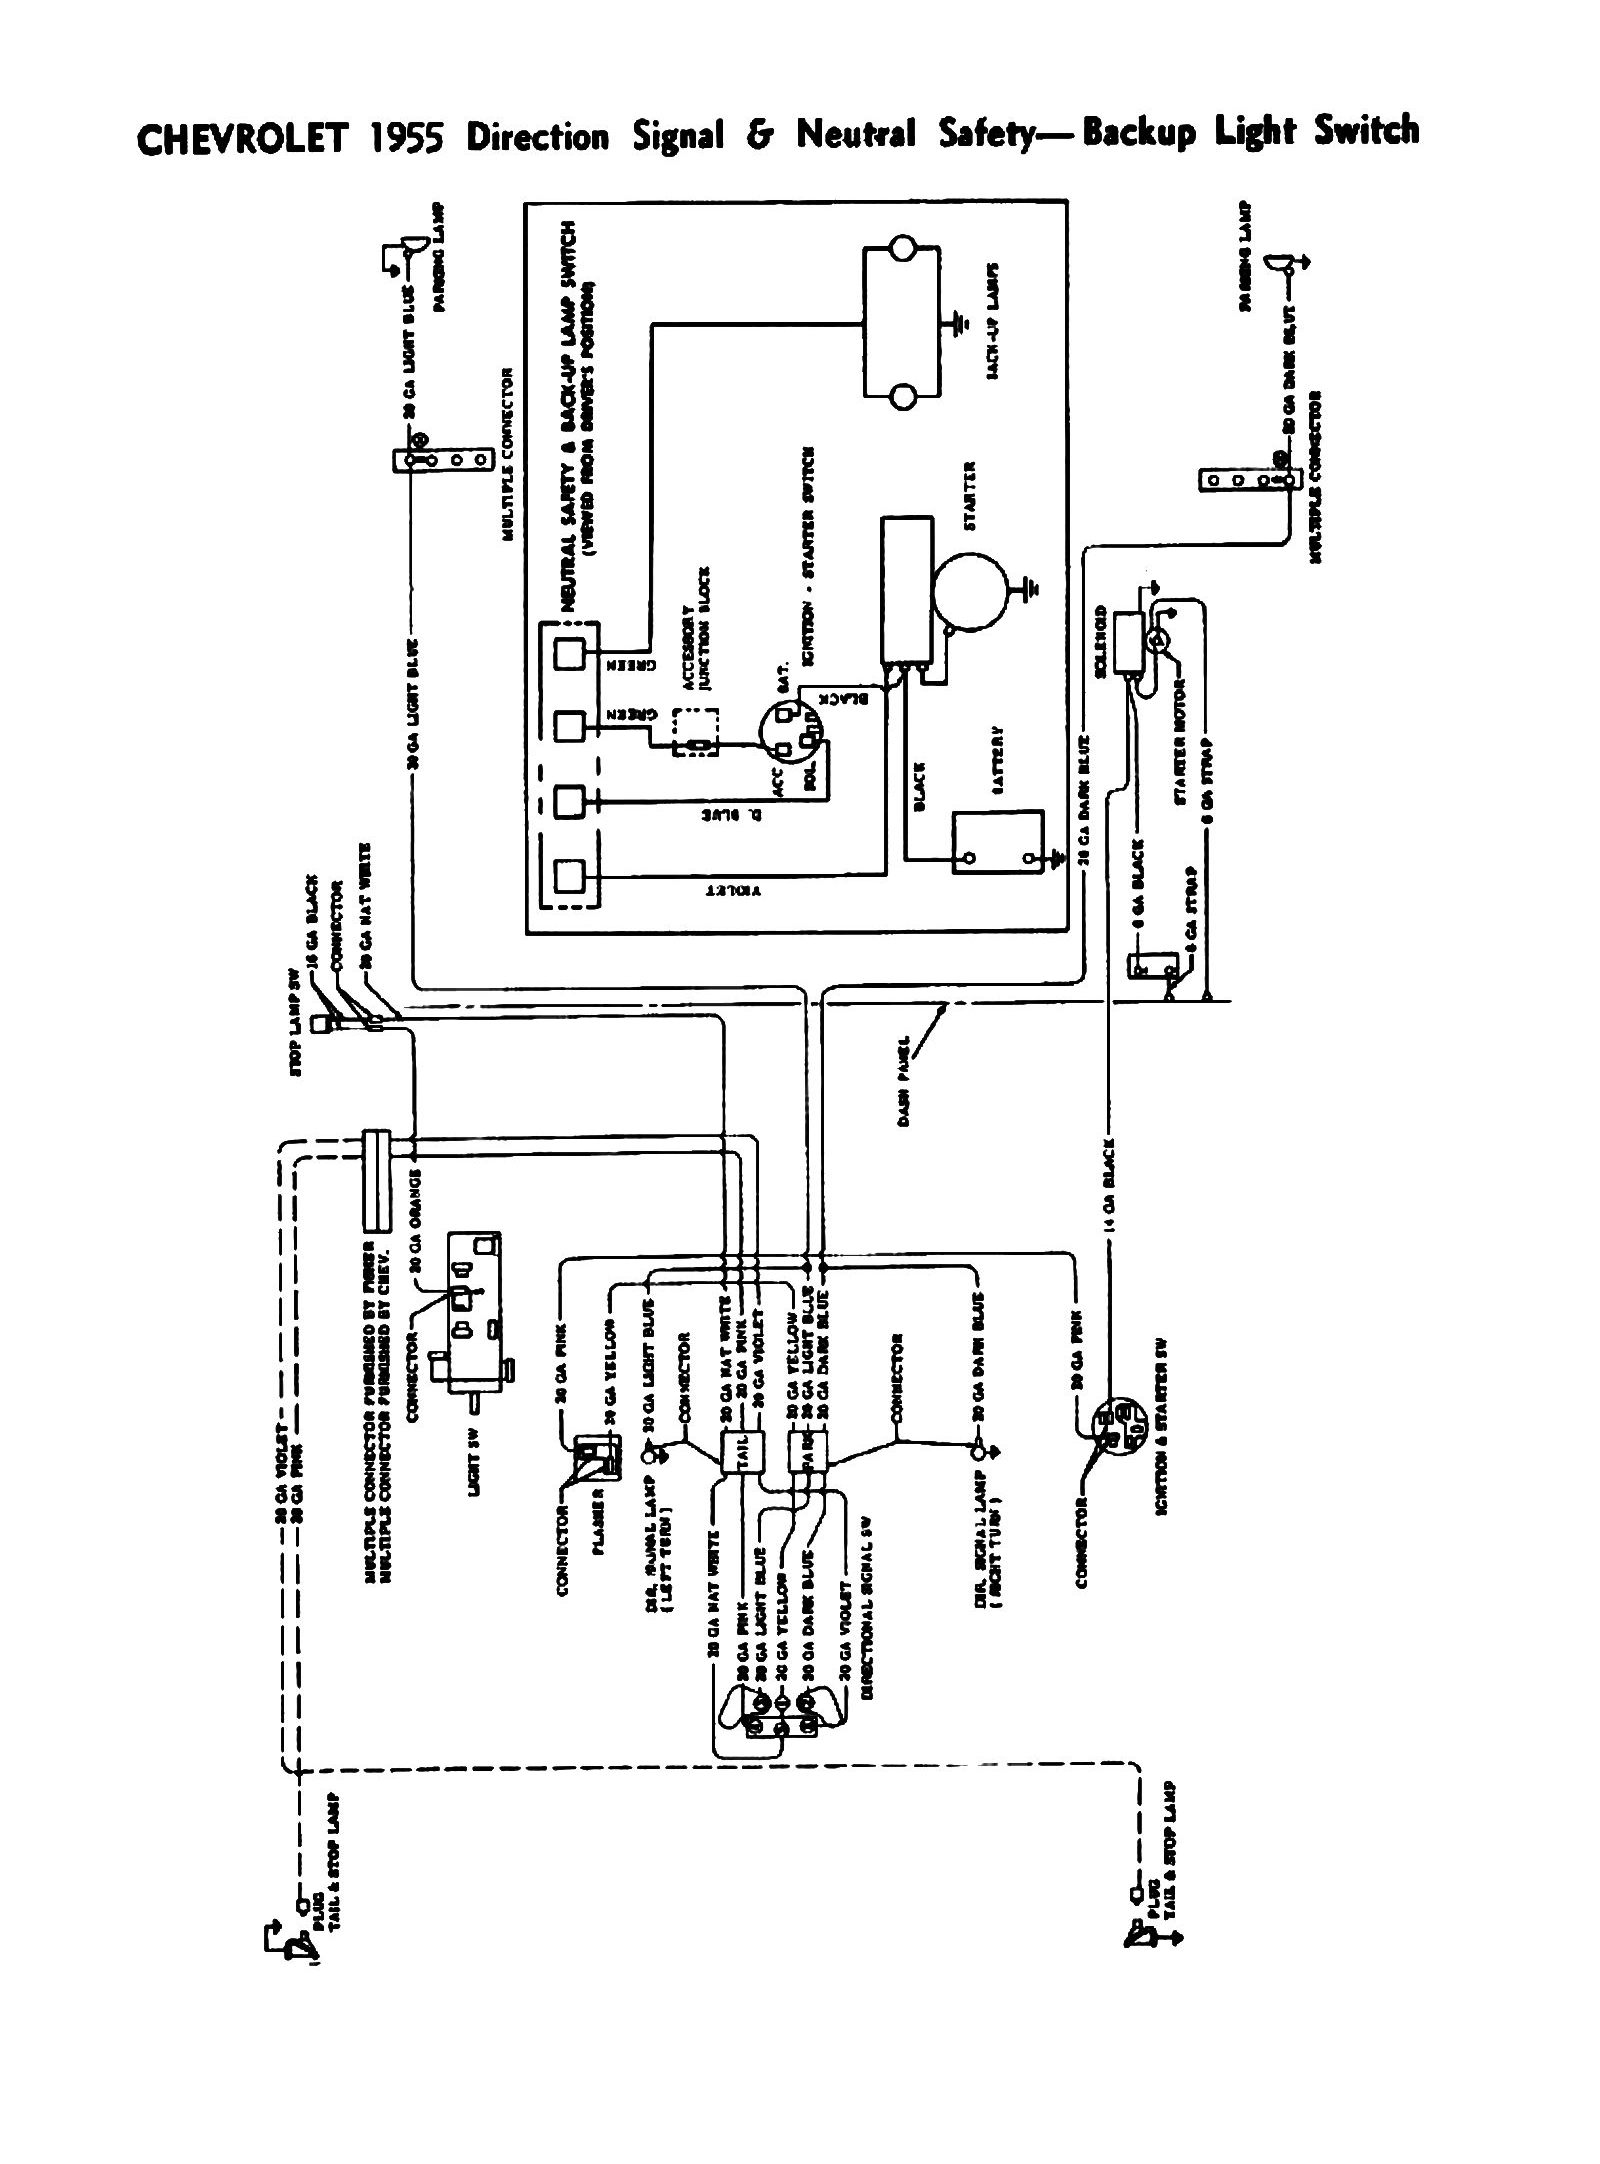 55signal chevy wiring diagrams 1965 chevy c10 starter wiring diagram at suagrazia.org